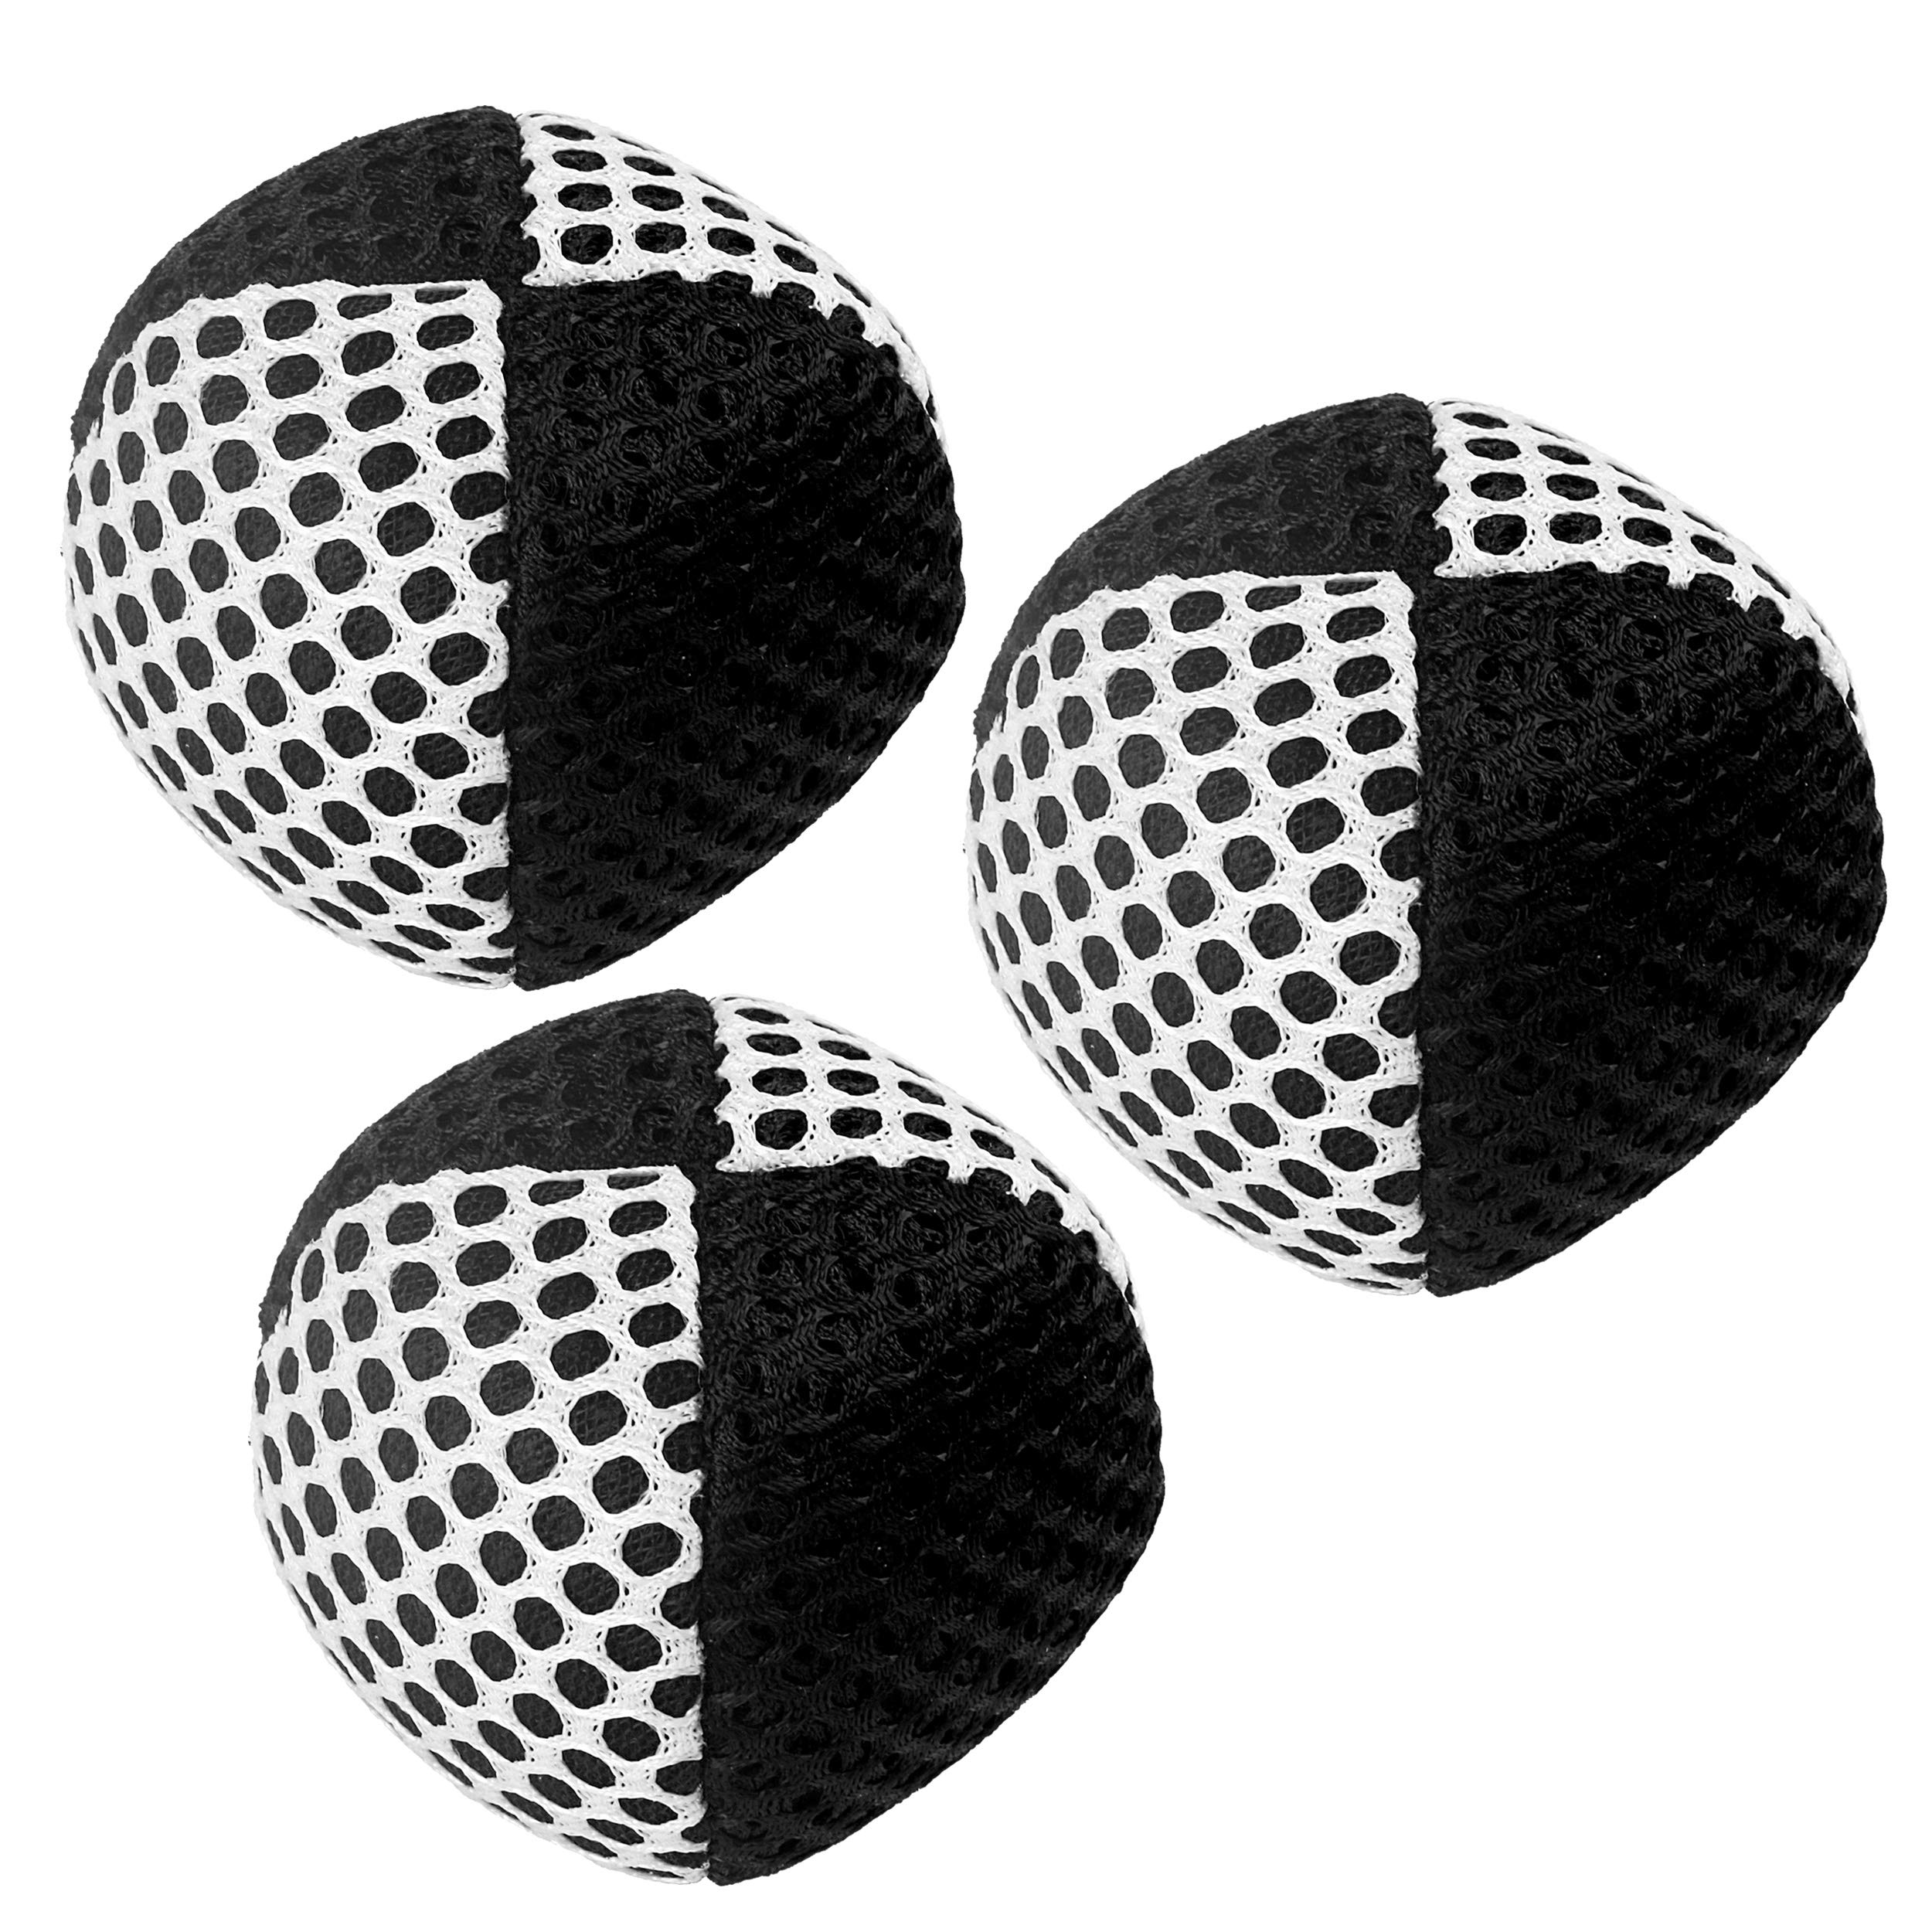 Speevers Xballs Juggling Balls Professional Set of 3 Fresh Design - 10 Beautiful Colors Available - 2 Layers of Net Carry Case - Choice of The World Champions (Black - White, 120g) by Speevers